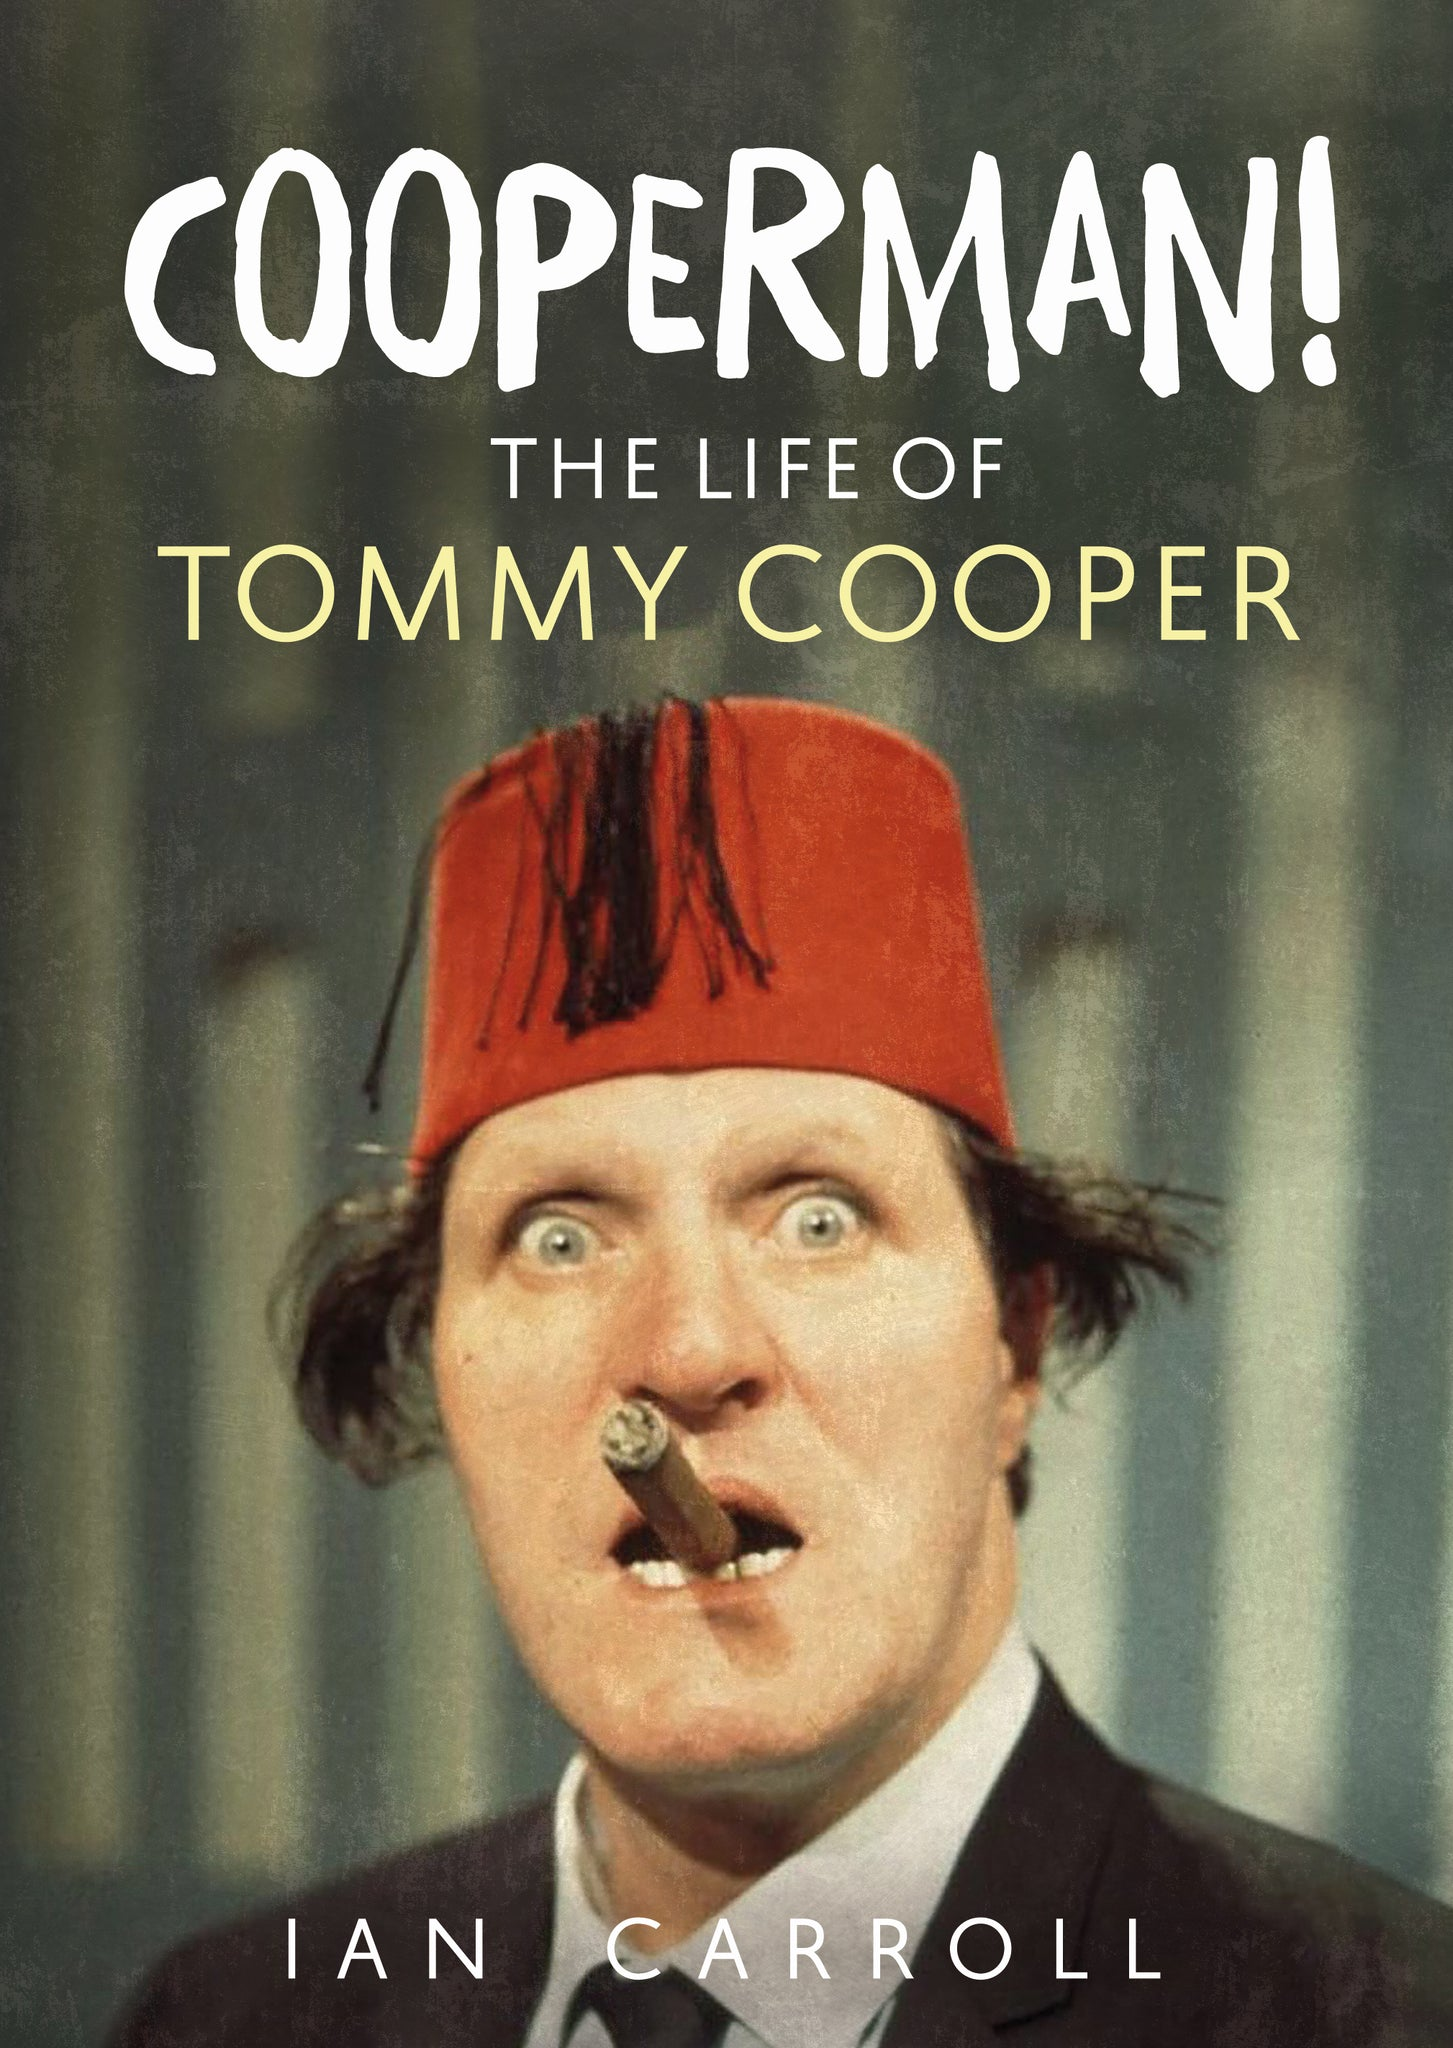 Cooperman! The Life of Tommy Cooper - available from Fonthill Media